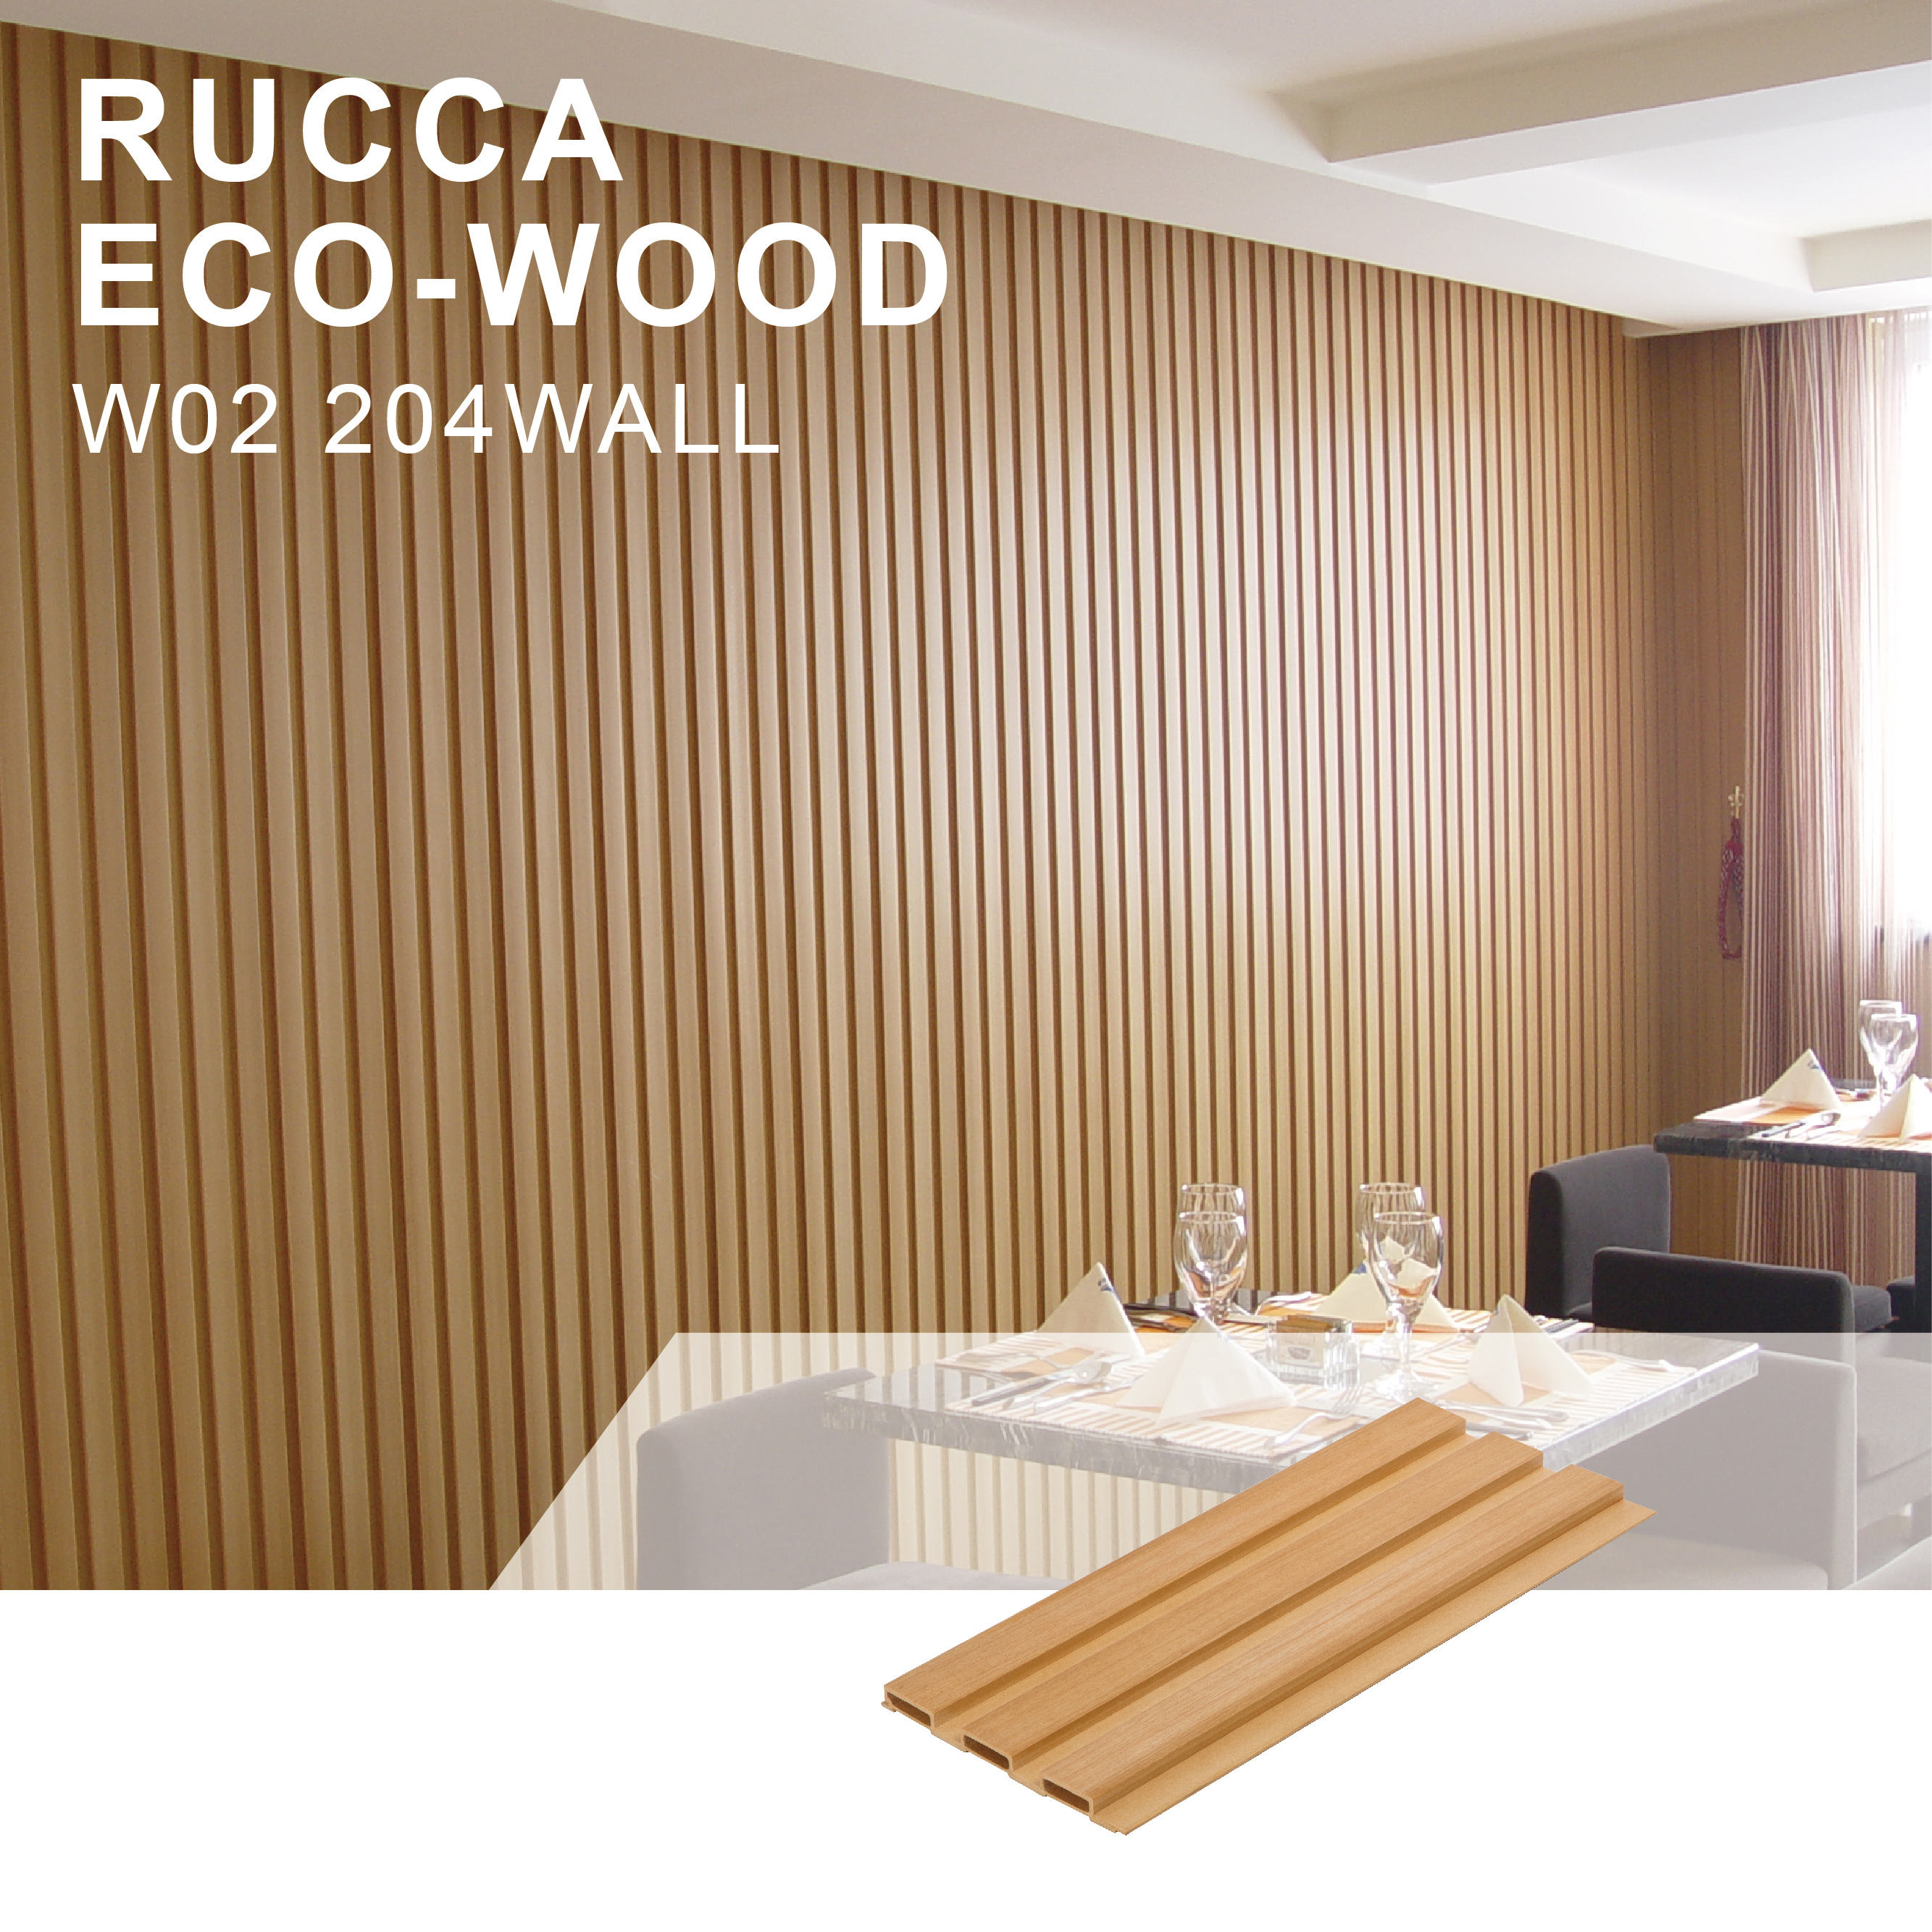 Rucca WPC/Wood PVC Plastic Composite Creative Home Decorative Wall Panel 204*16mm